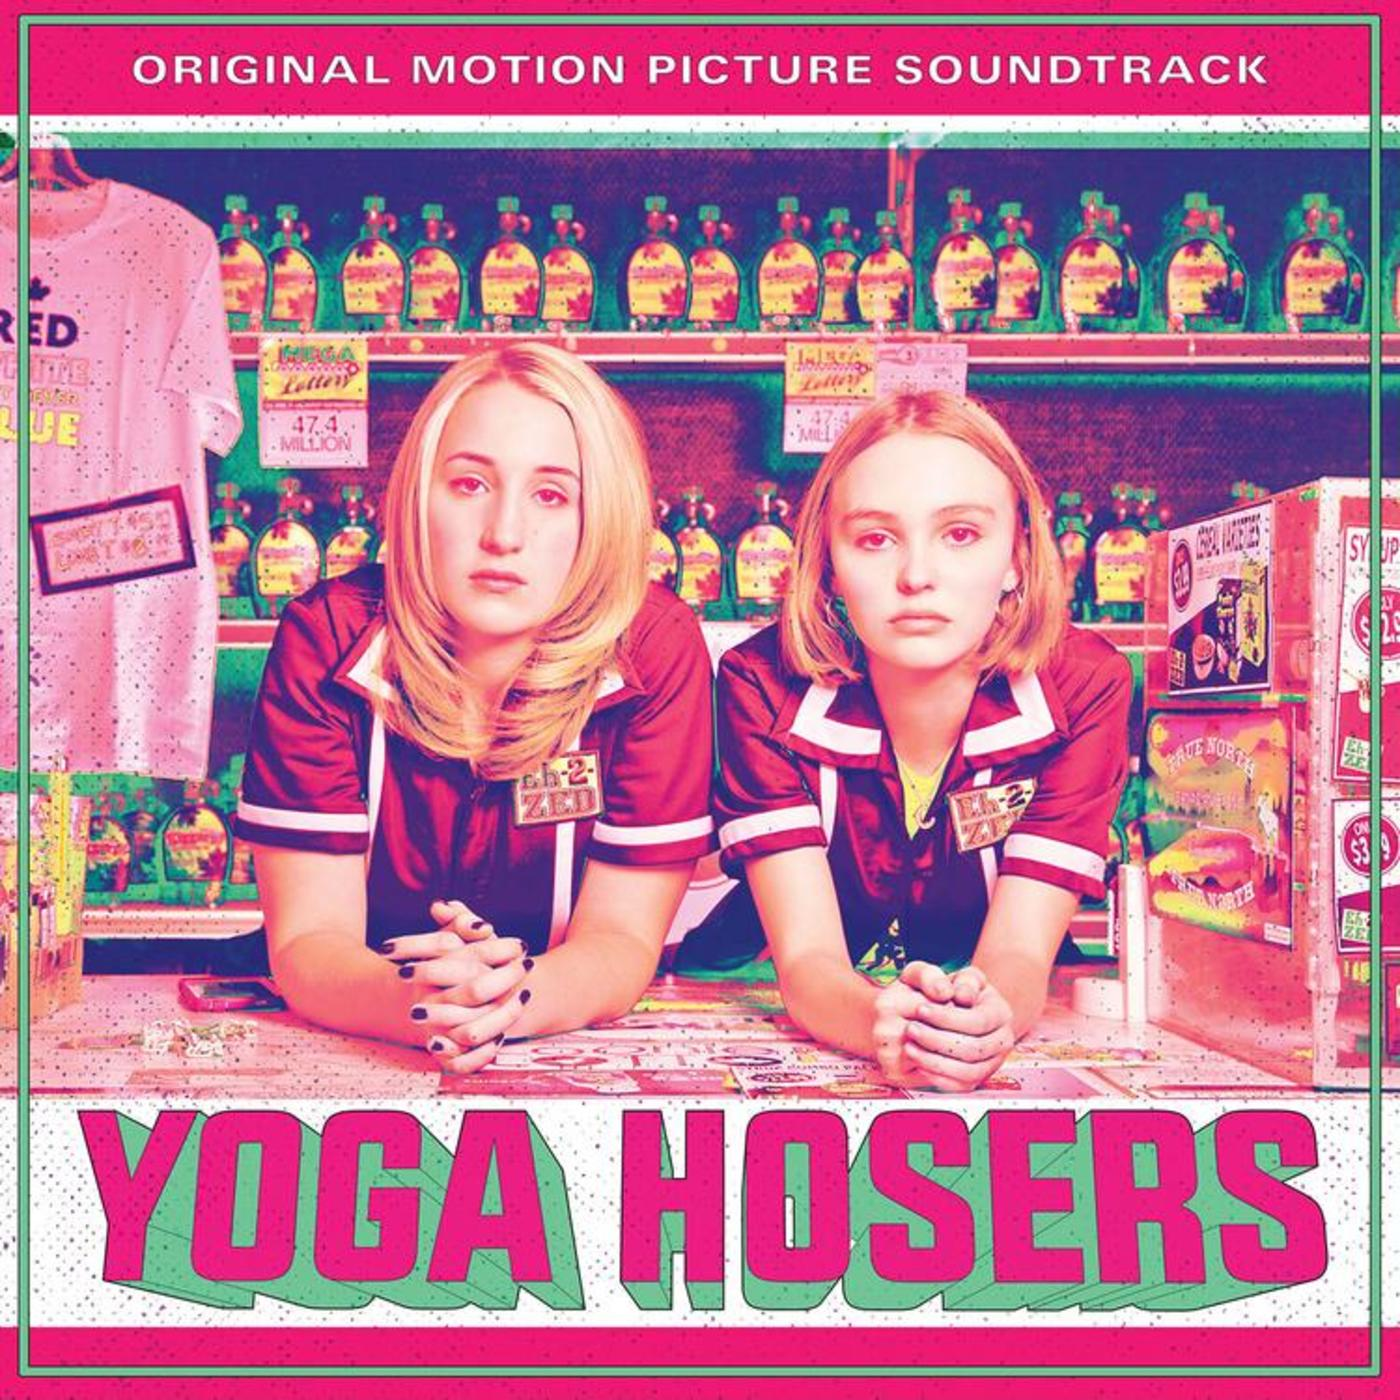 Yoga Hoser Soundtrack